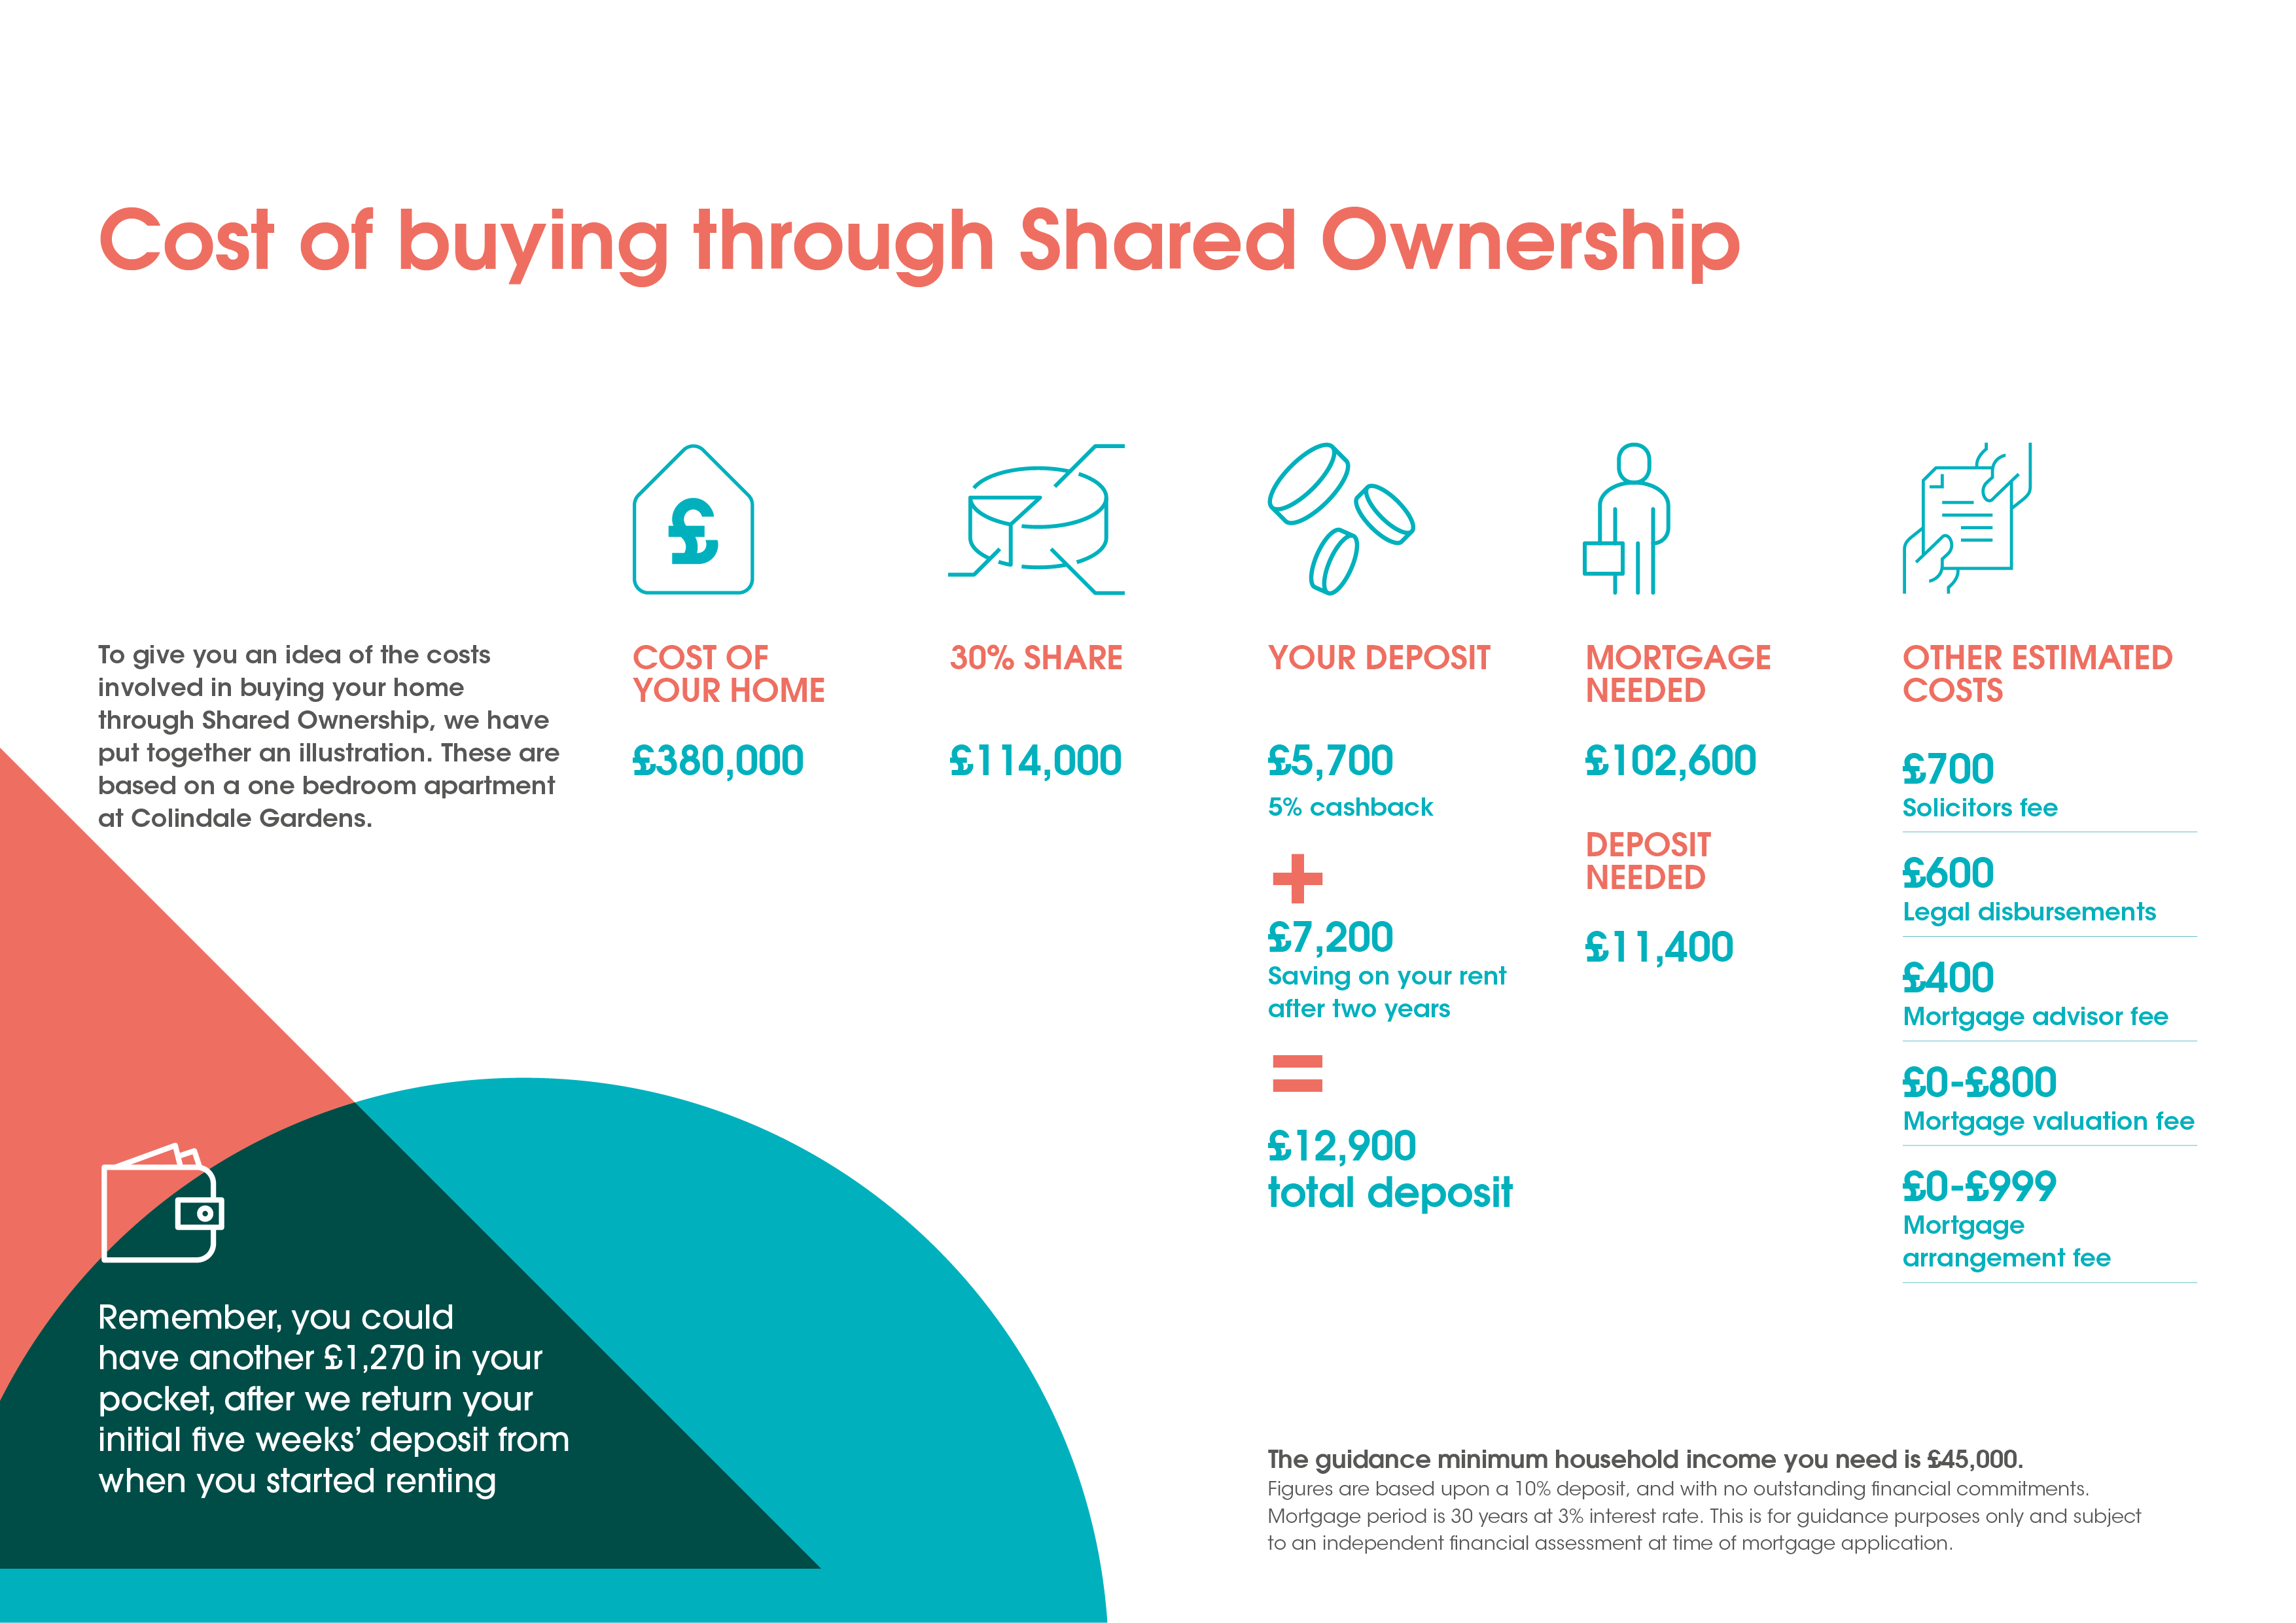 The cost of buying with Shared ownership